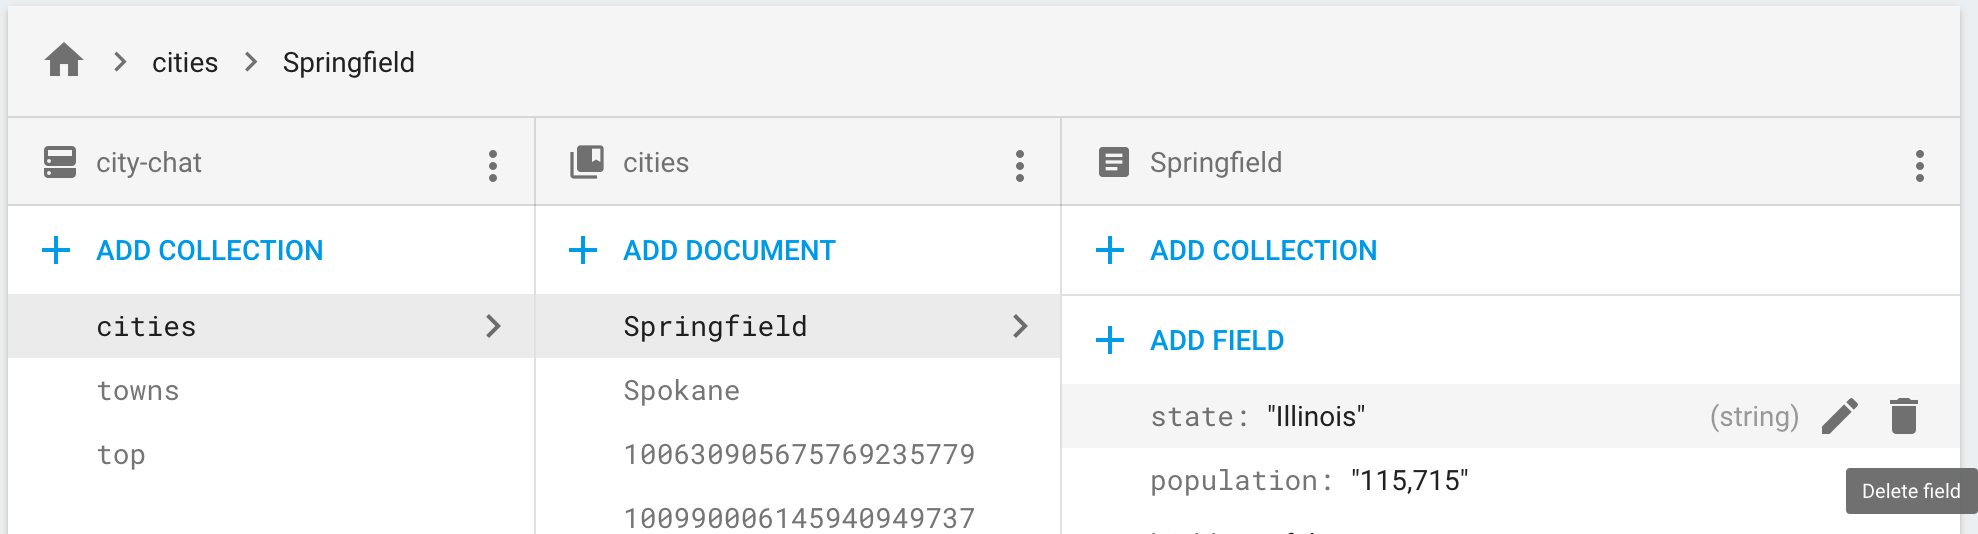 Click the delete icon to remove a field from a document